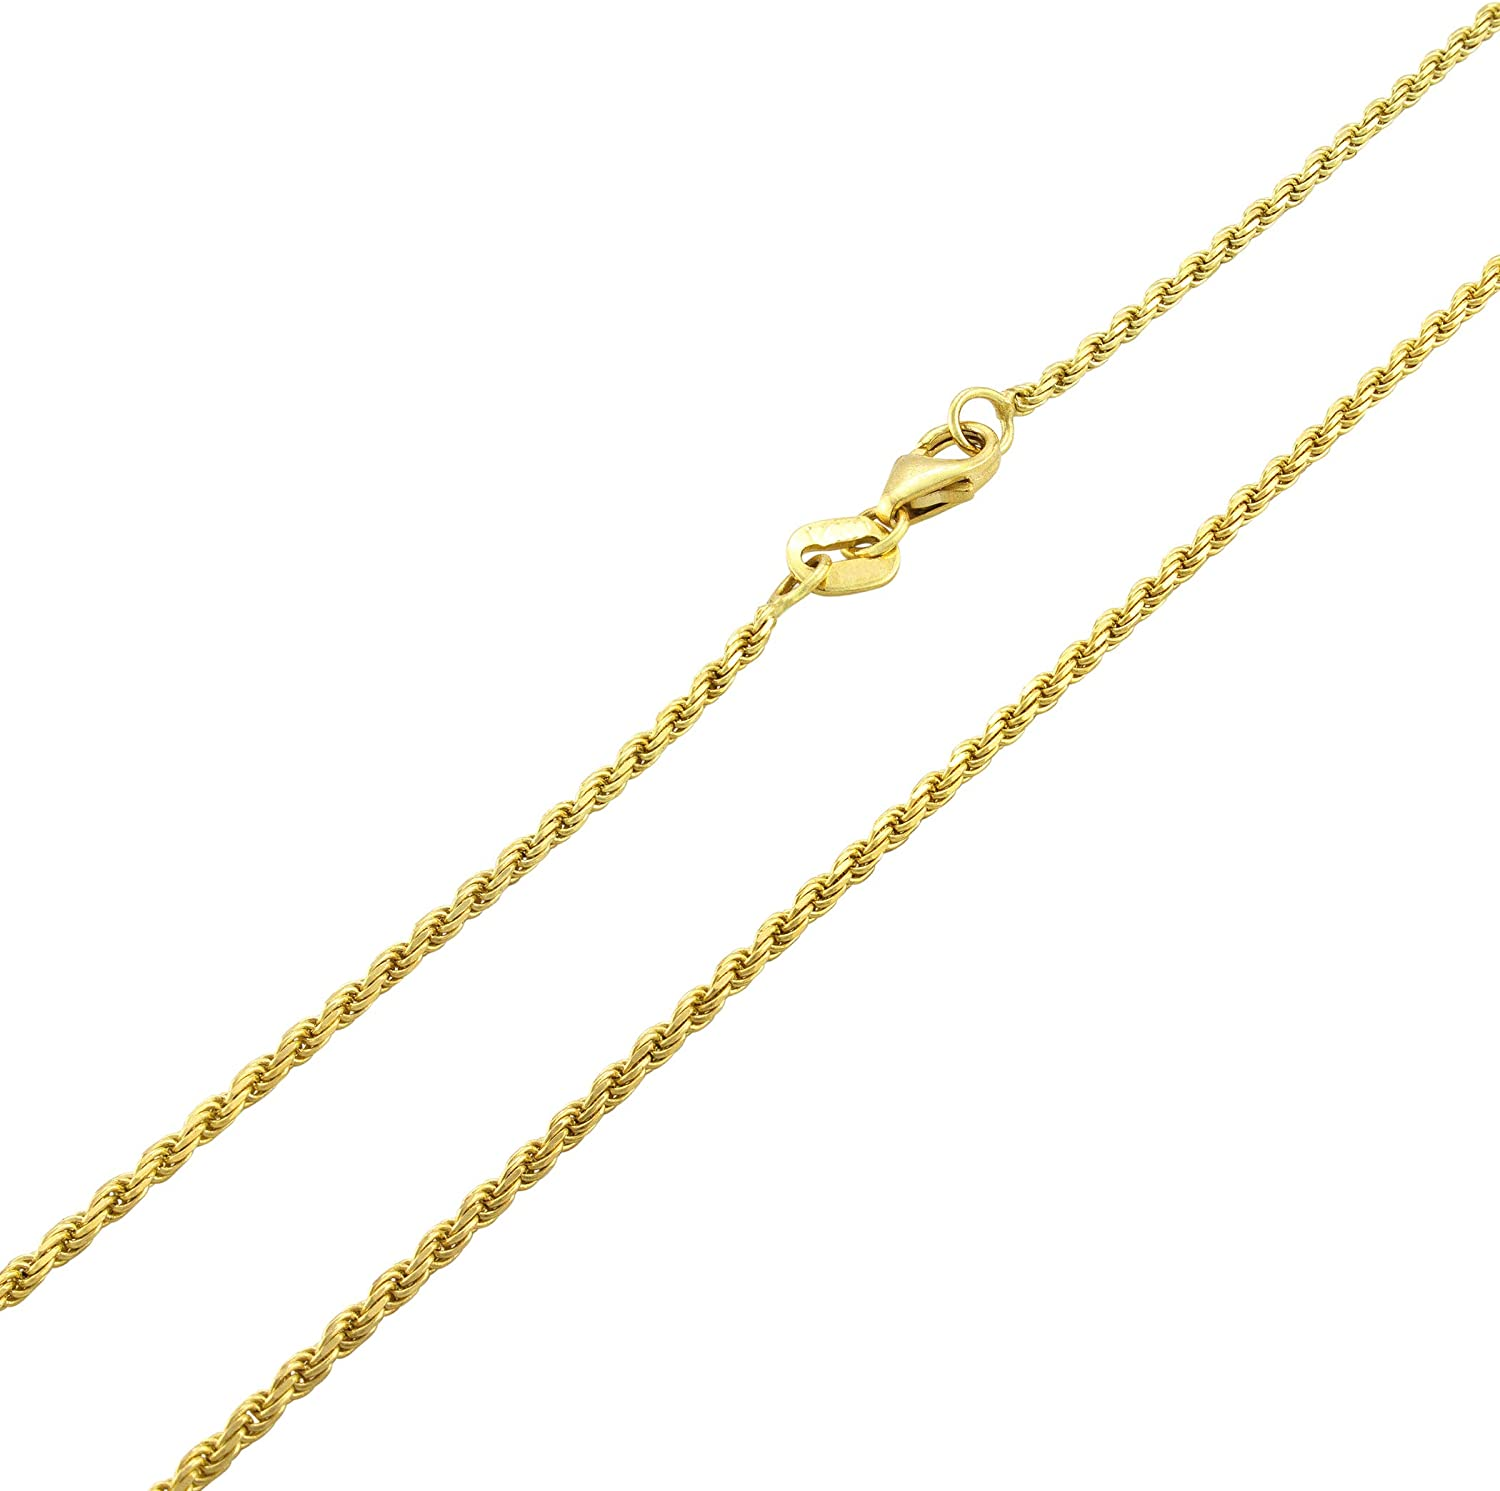 Nuragold 10k Yellow Gold 2mm Rope Chain Pendant Necklace, Womens Mens Jewelry 14